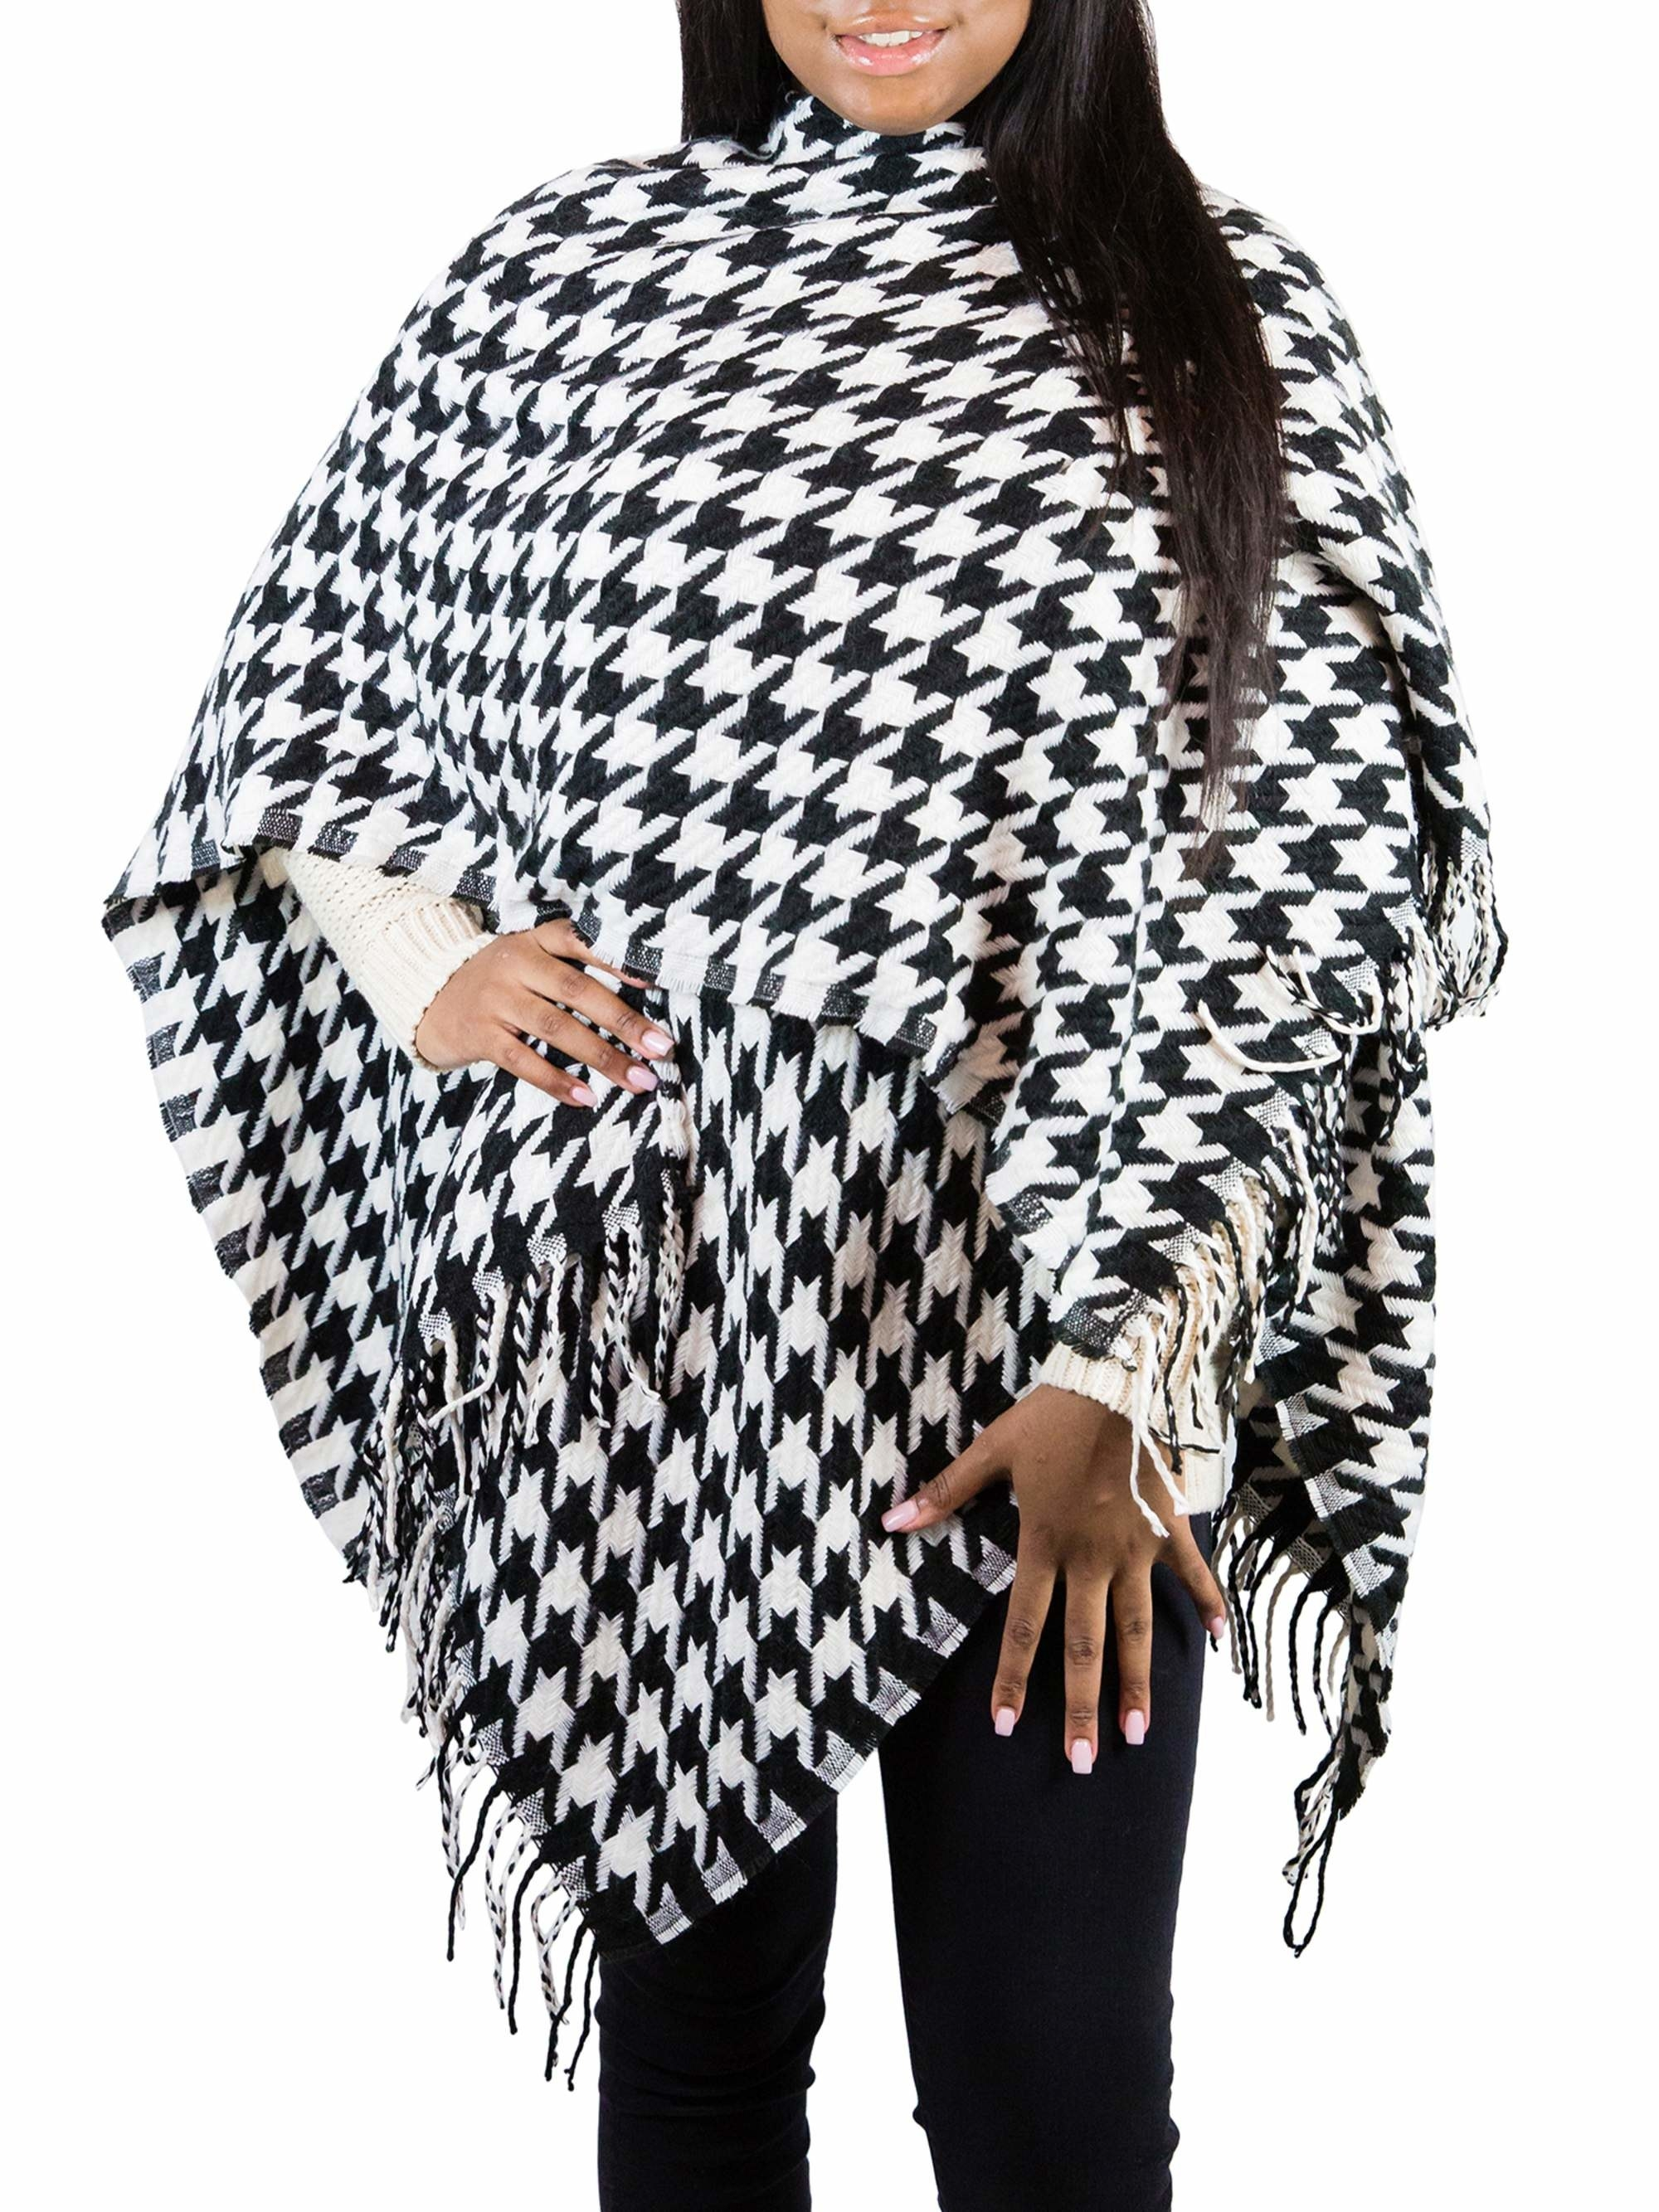 Model in the black and white frayed poncho